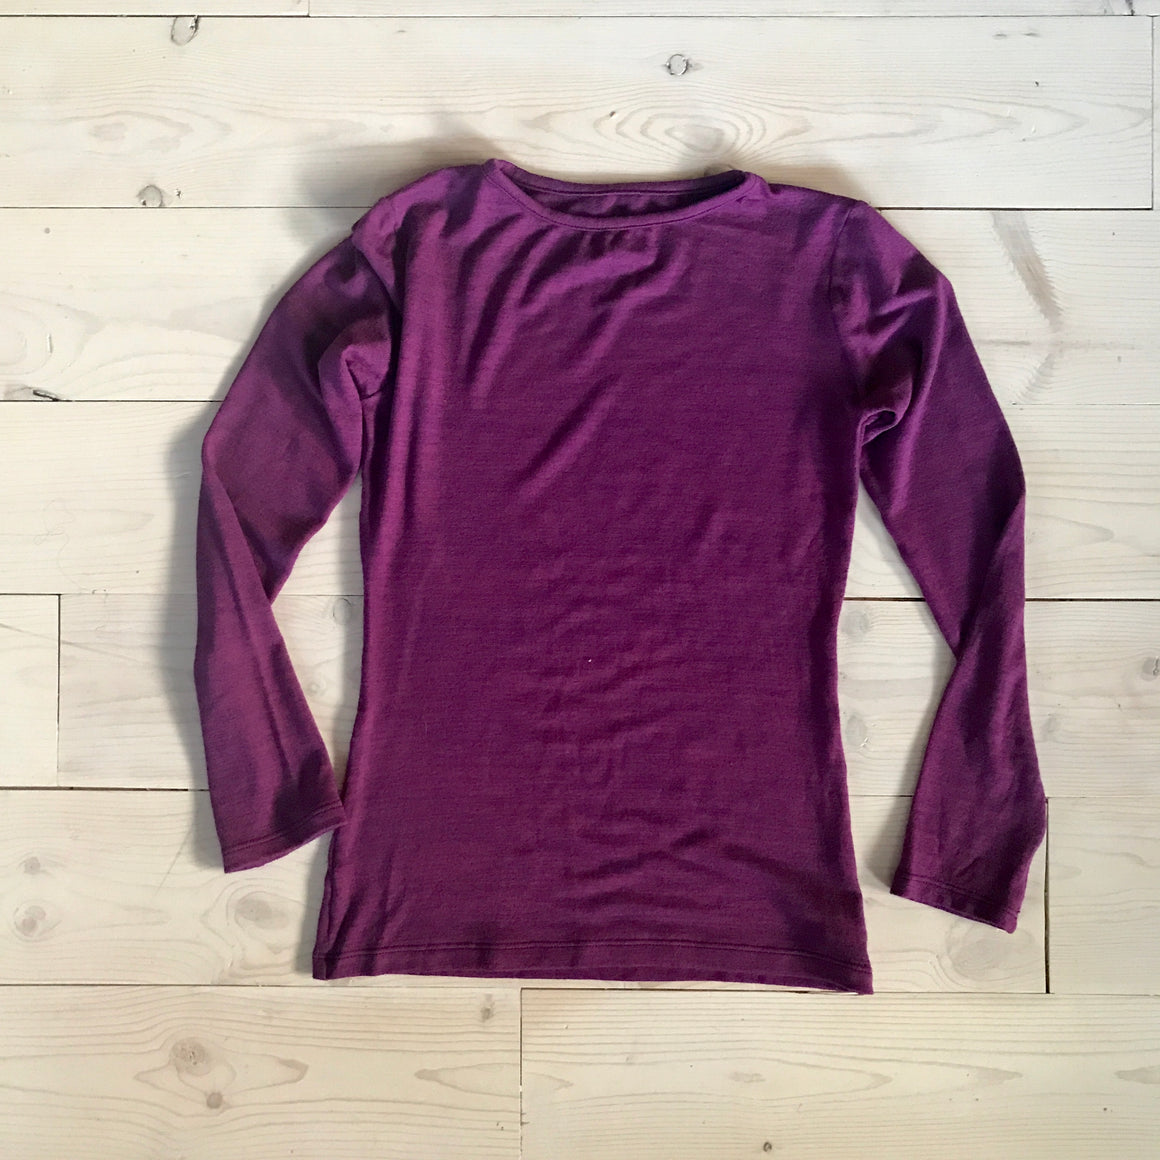 ASPYN TEE - Purple -Spring 16' Sample - size 12